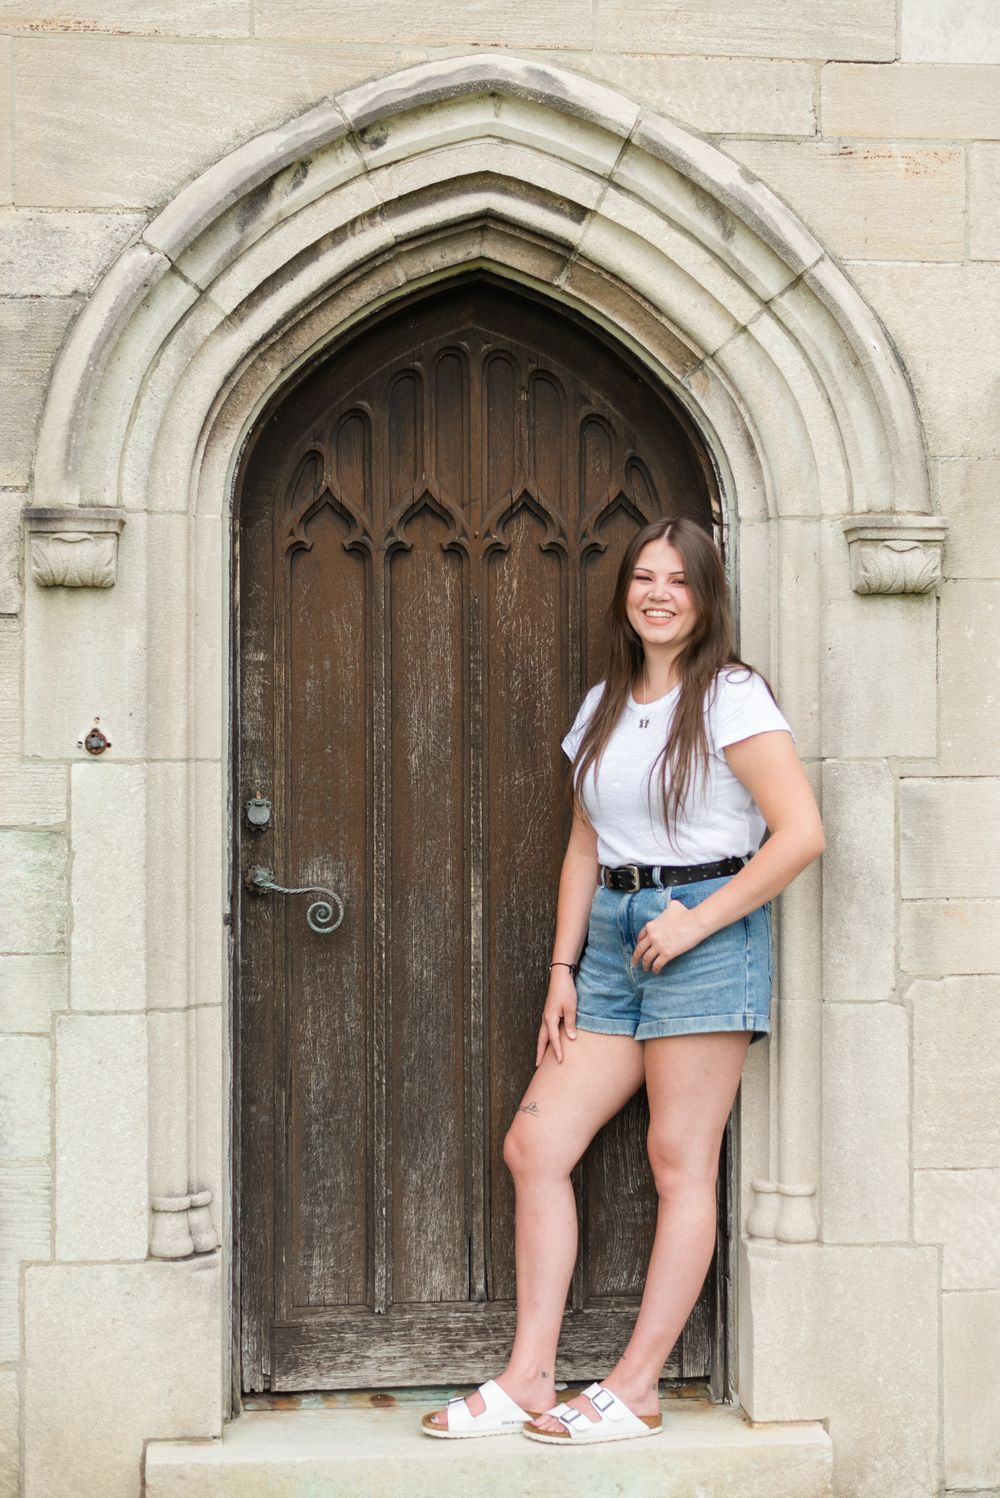 Girl laughing in old doorway at Hartwood Acres in Pittsburgh Pennsylvania